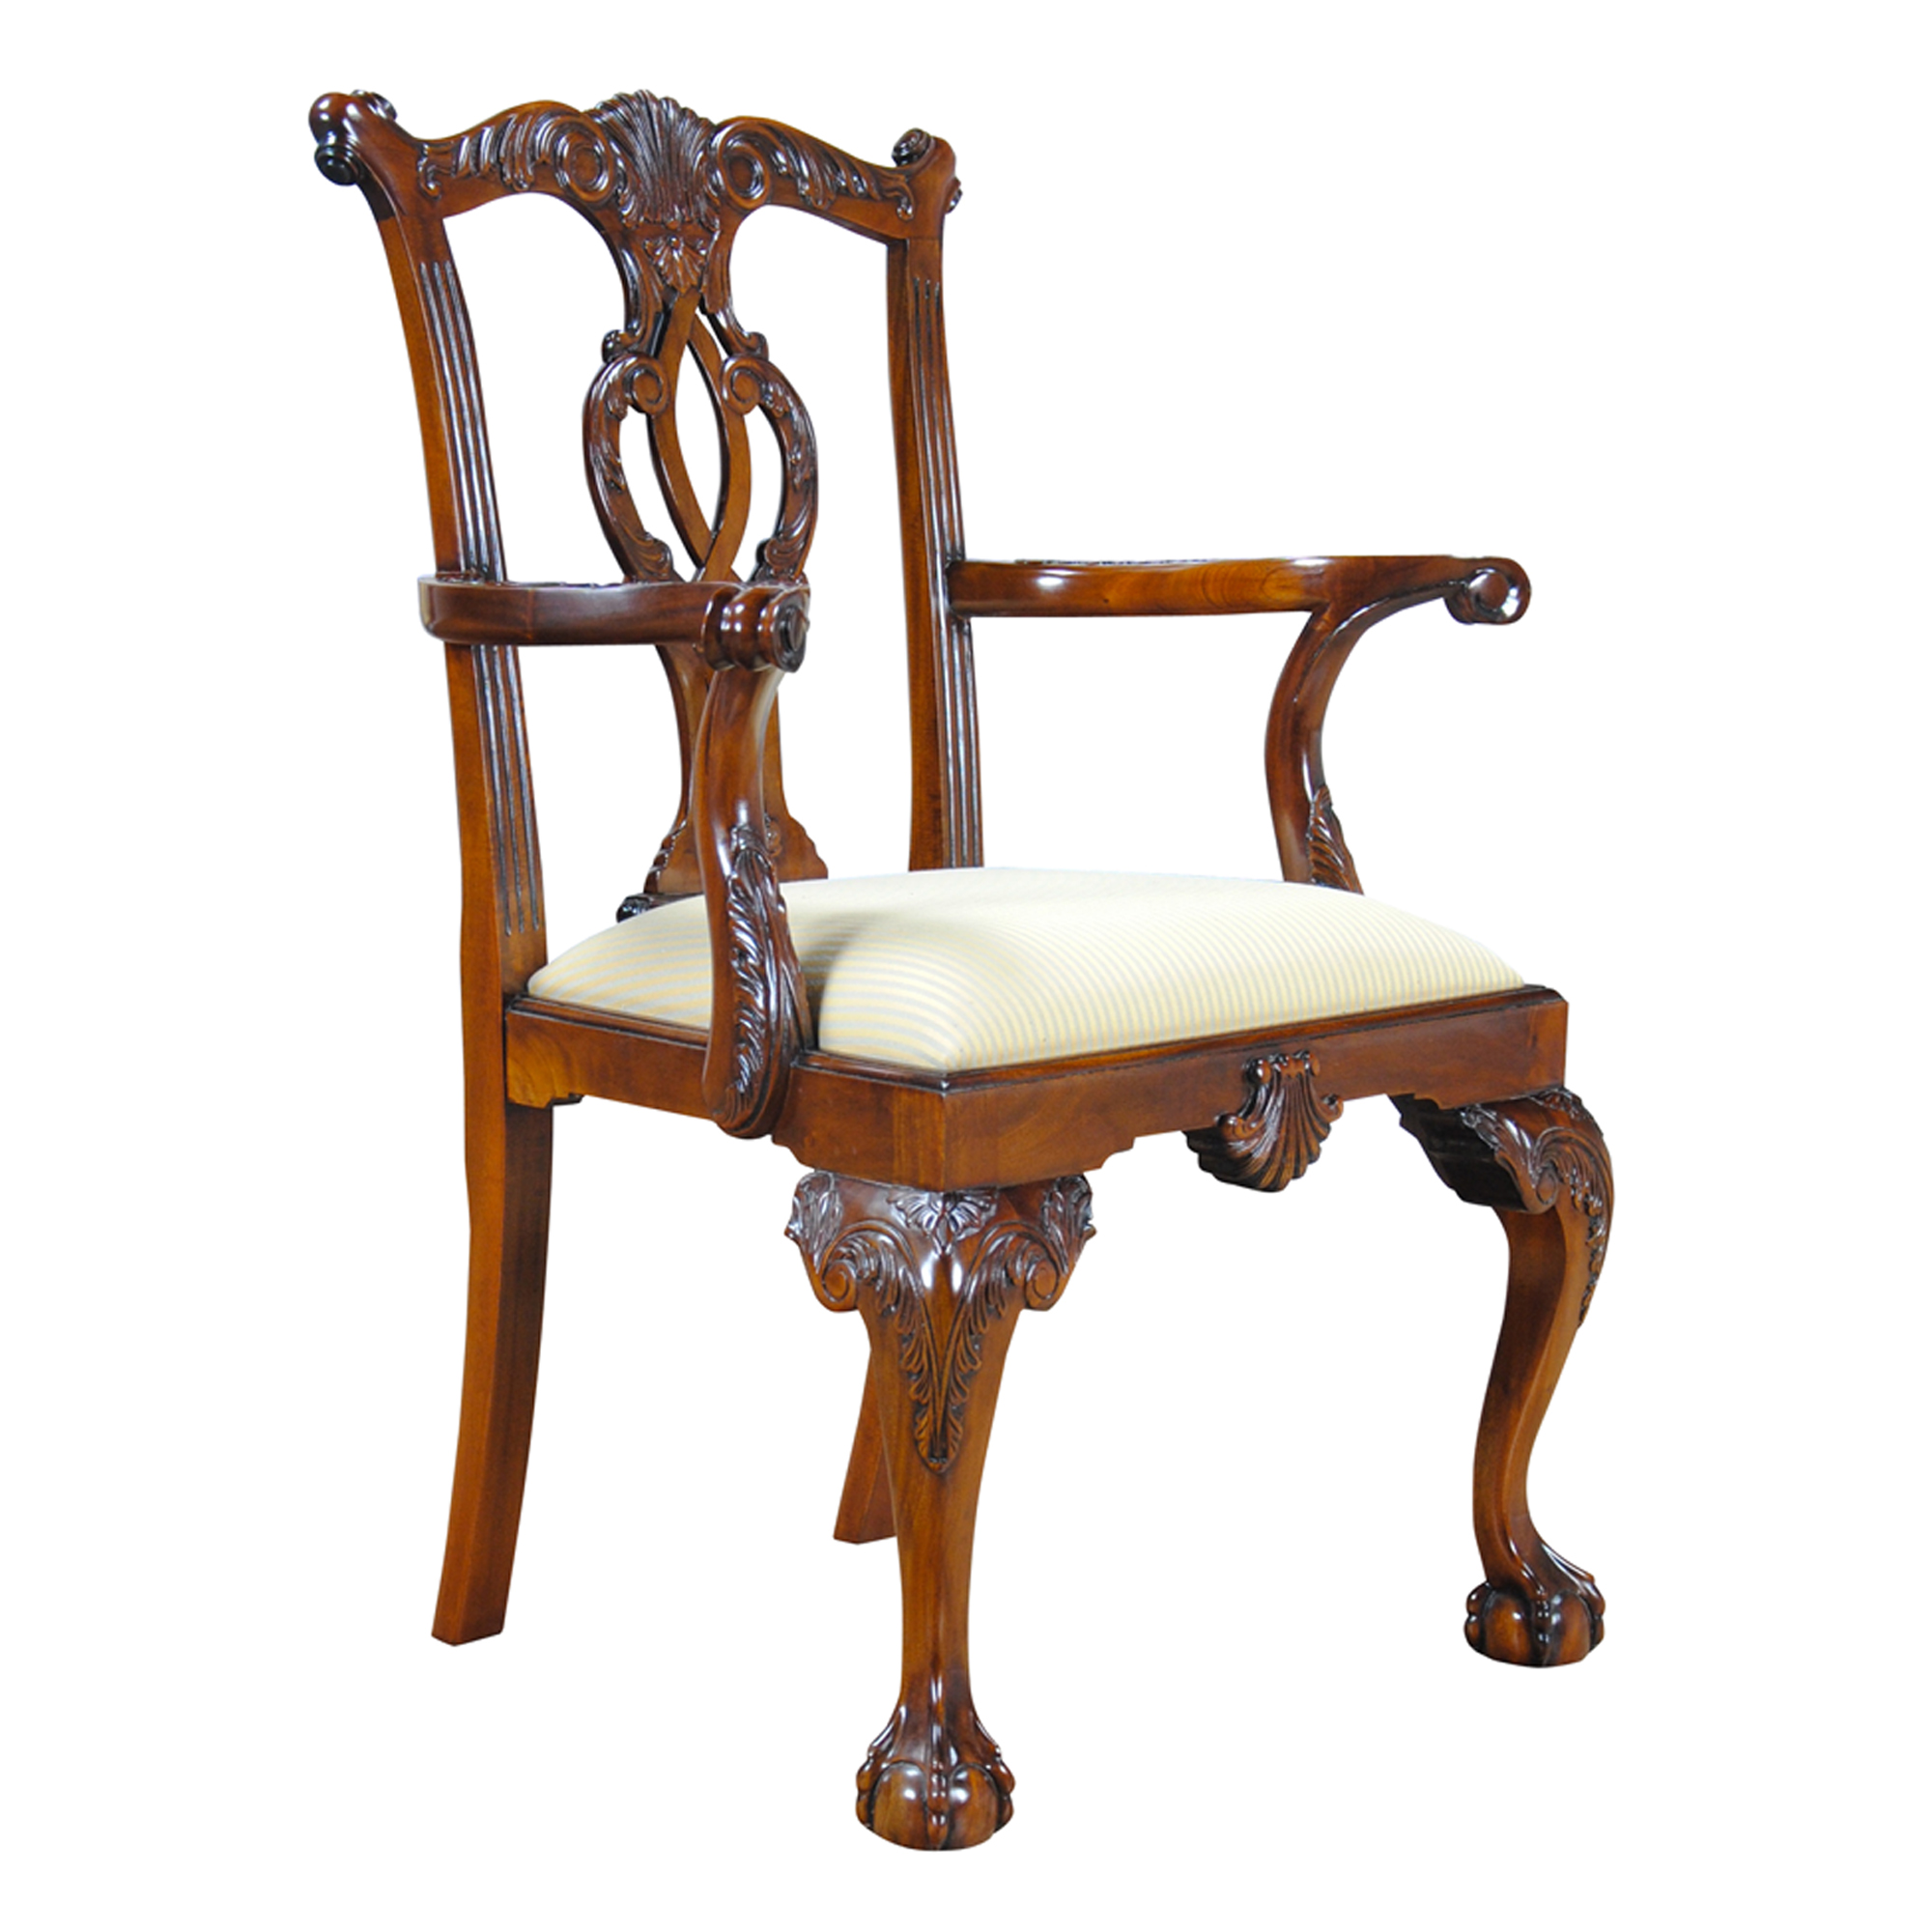 Chippendale Furniture: Philadelphia Chippendale Arm Chair, Niagara Furniture